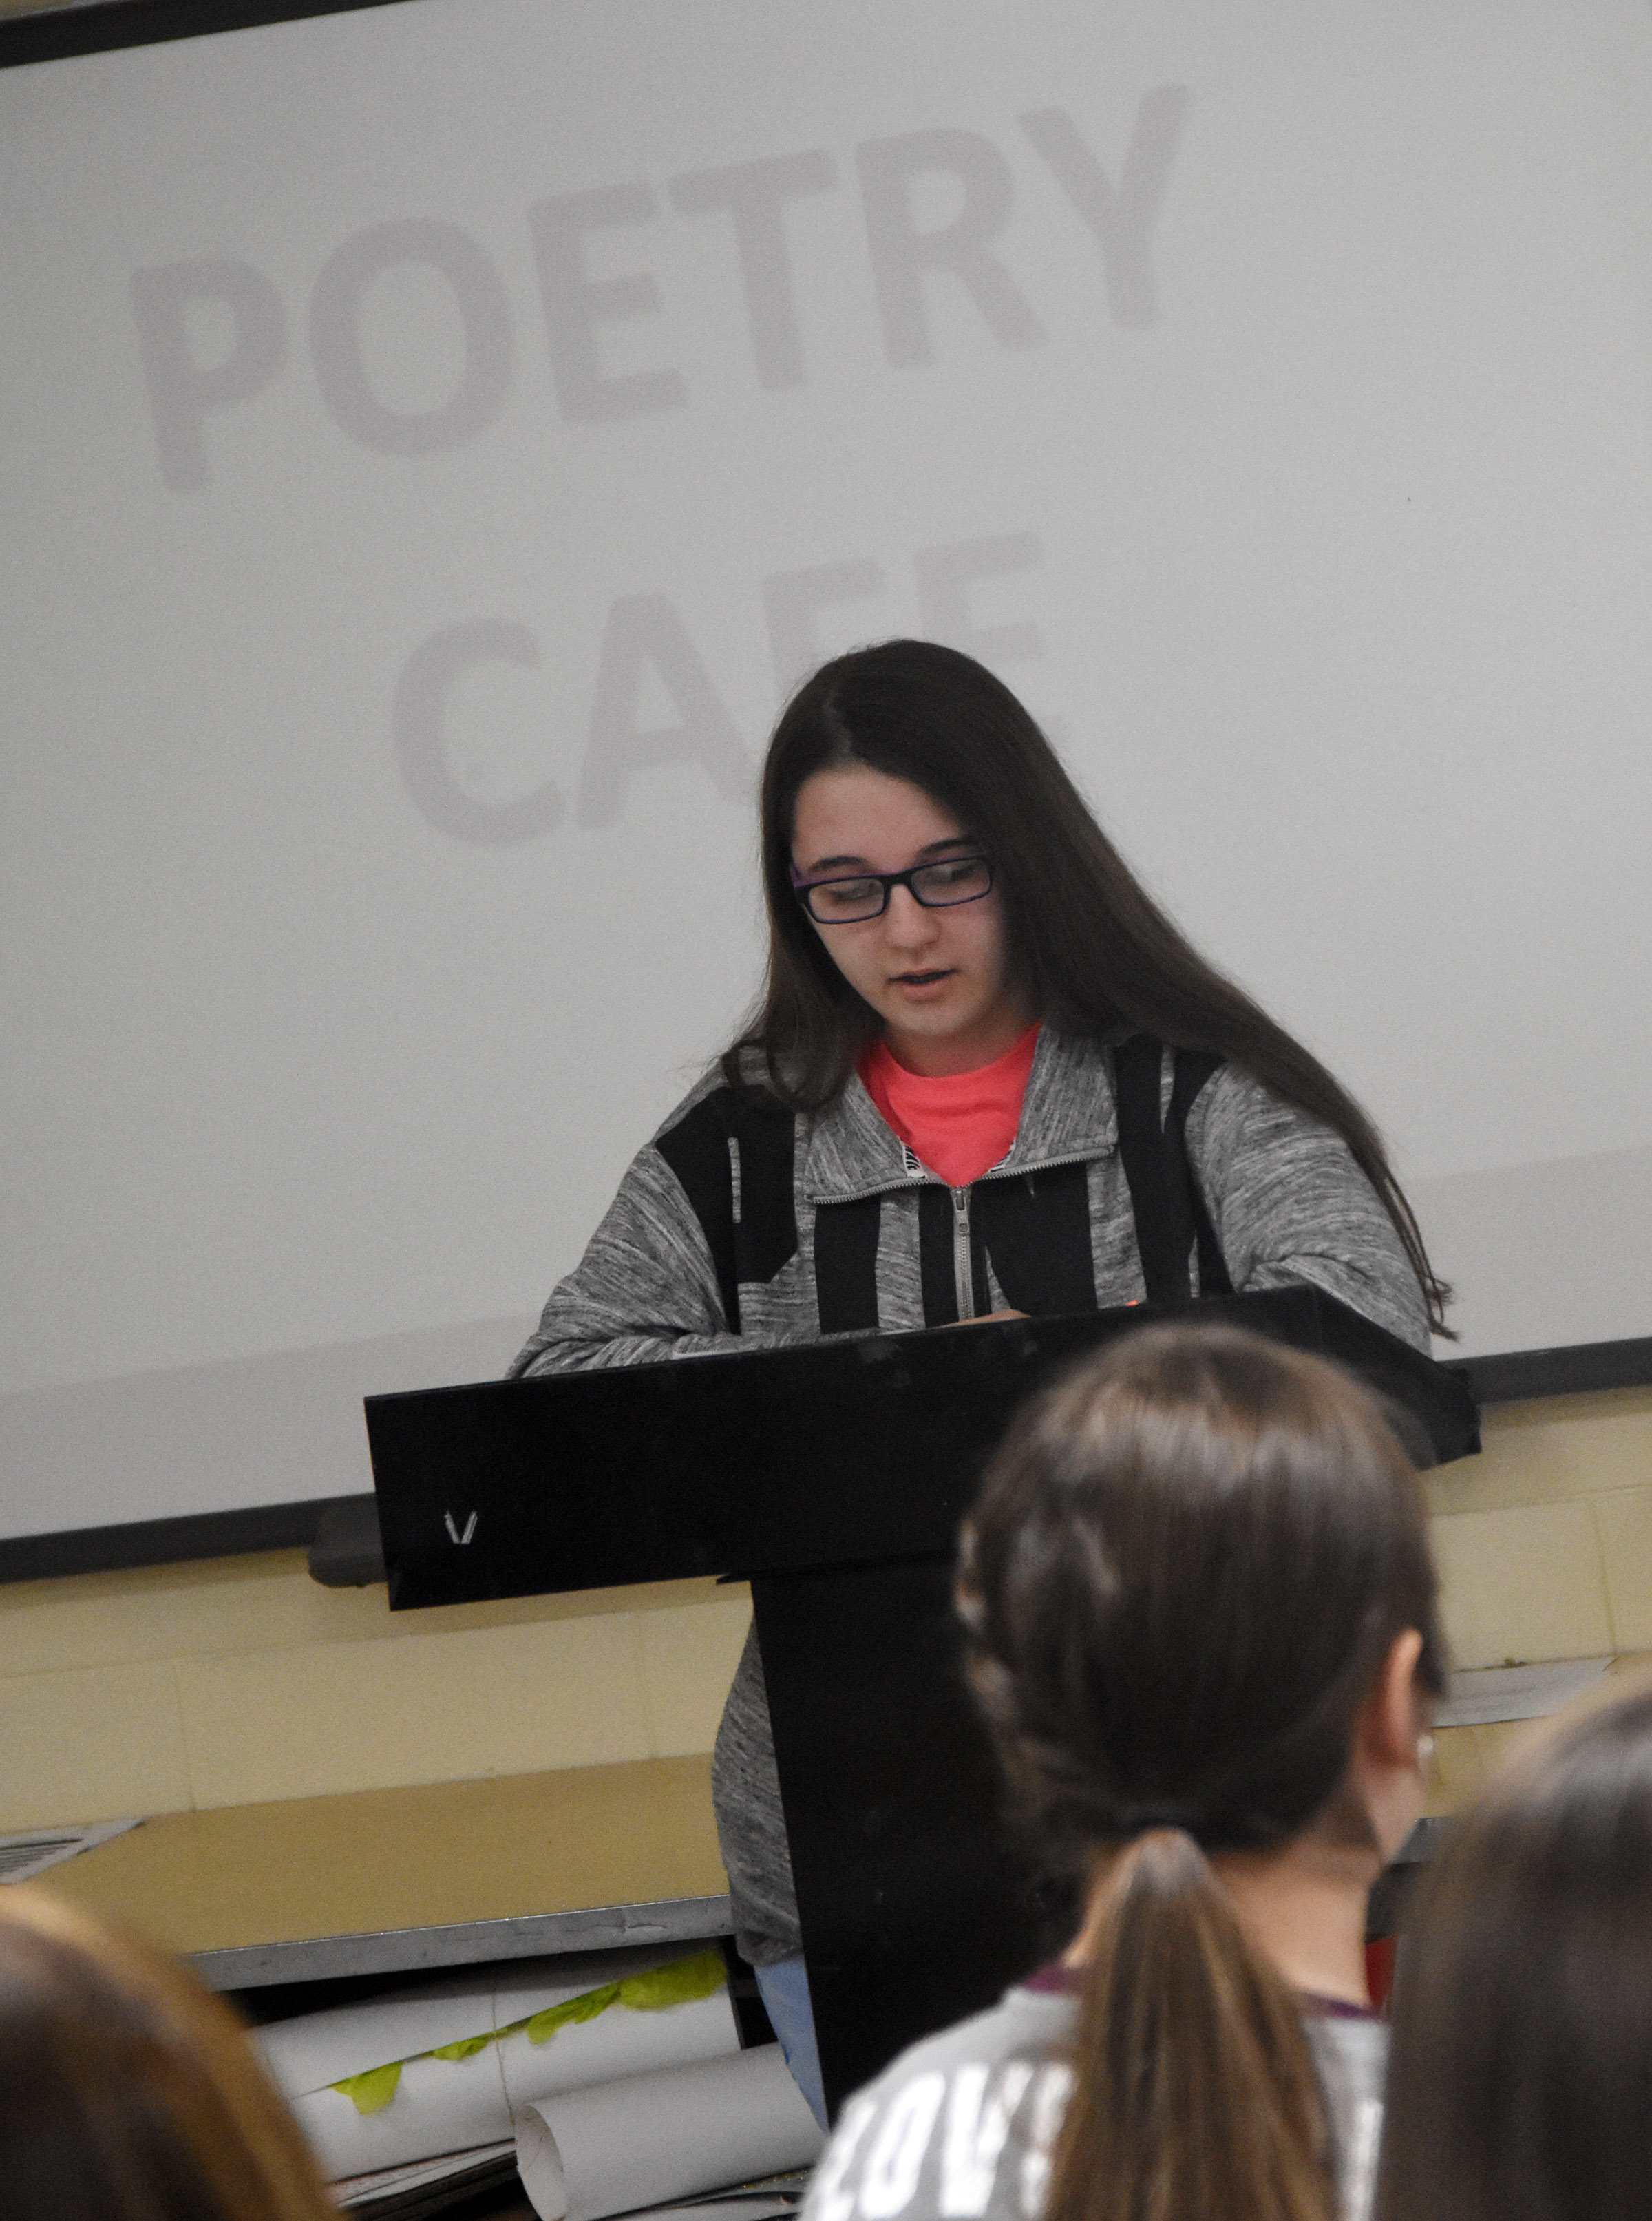 Campbellsville High School freshman Chloe Cox reads her poetry.